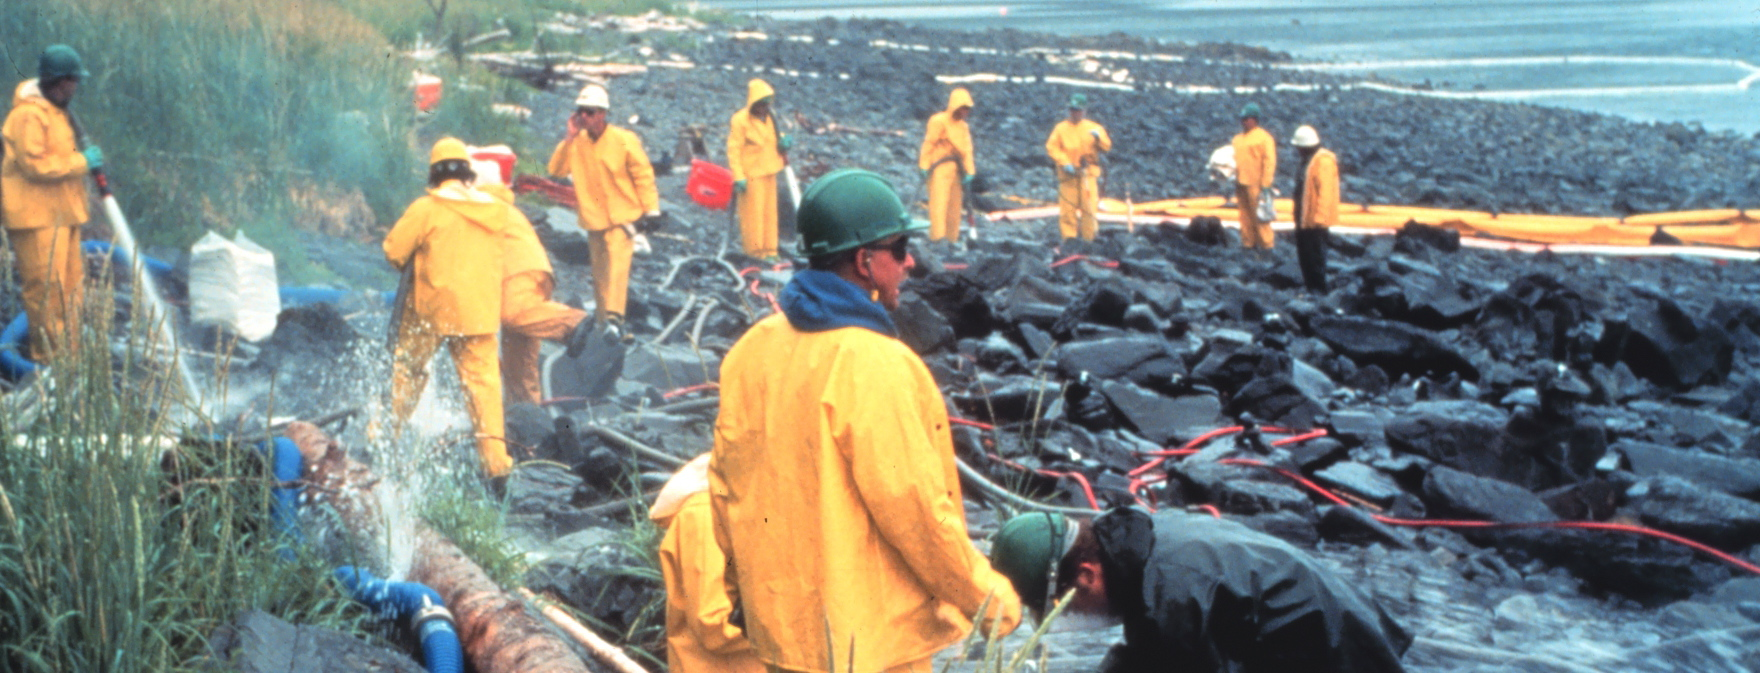 a research on the exxon valdez oil spill Abstract we report on the results of a large-scale contingent valuation (cv) study conducted after the exxon valdez oil spill to assess the harm caused by it.